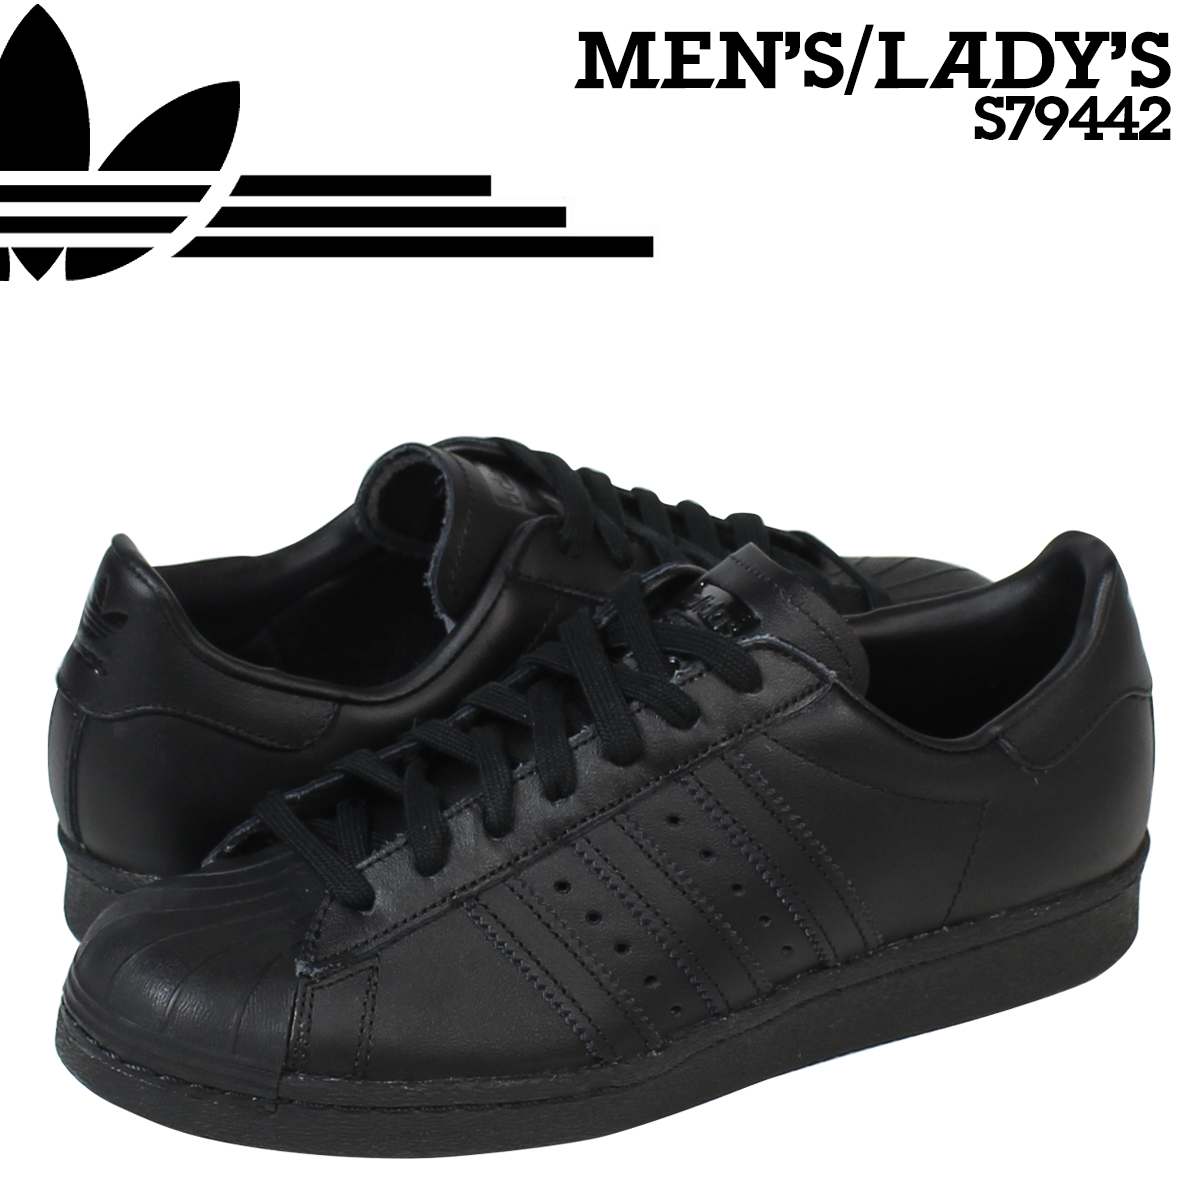 21ea81a9ea361 Whats up Sports  adidas Originals adidas originals superstar triple TNA sneakers  SUPERSTAR 80 s TRIPLE TONA S79442 men s women s shoes black  8 5 Add in ...